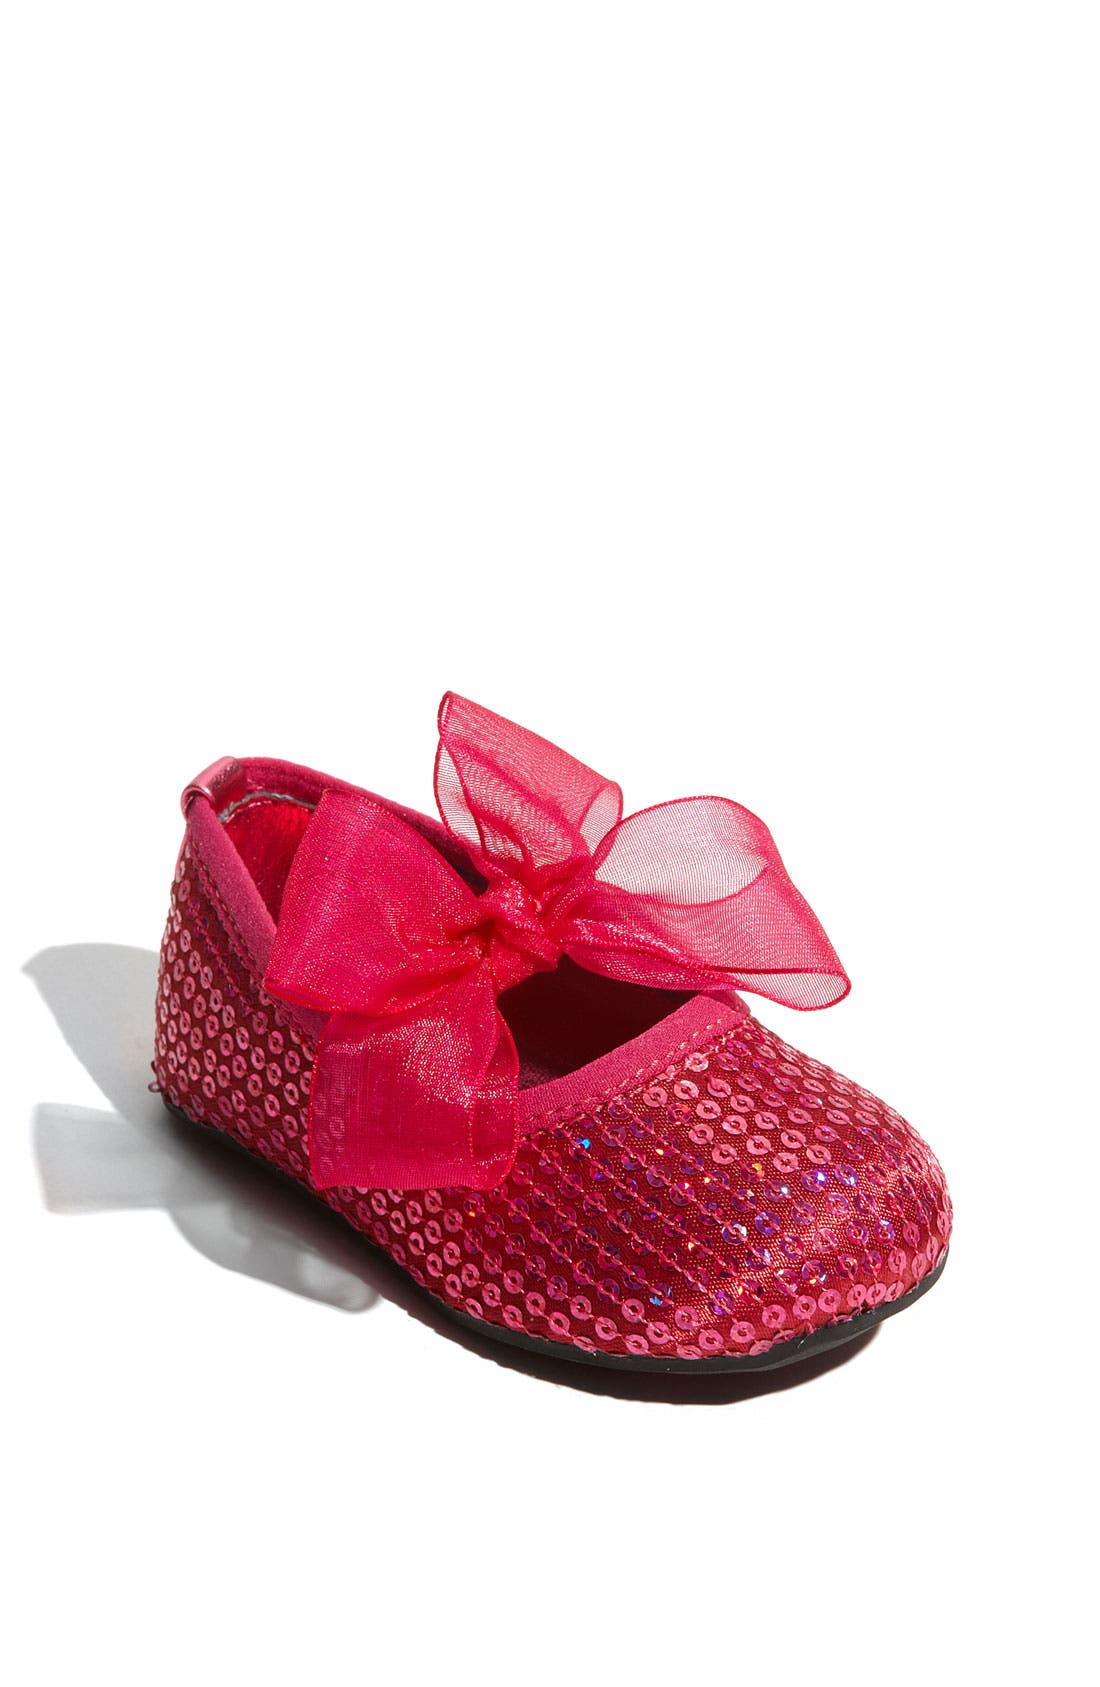 Alternate Image 1 Selected - Stuart Weitzman 'Baby Bling' Crib Shoe (Baby & Walker)